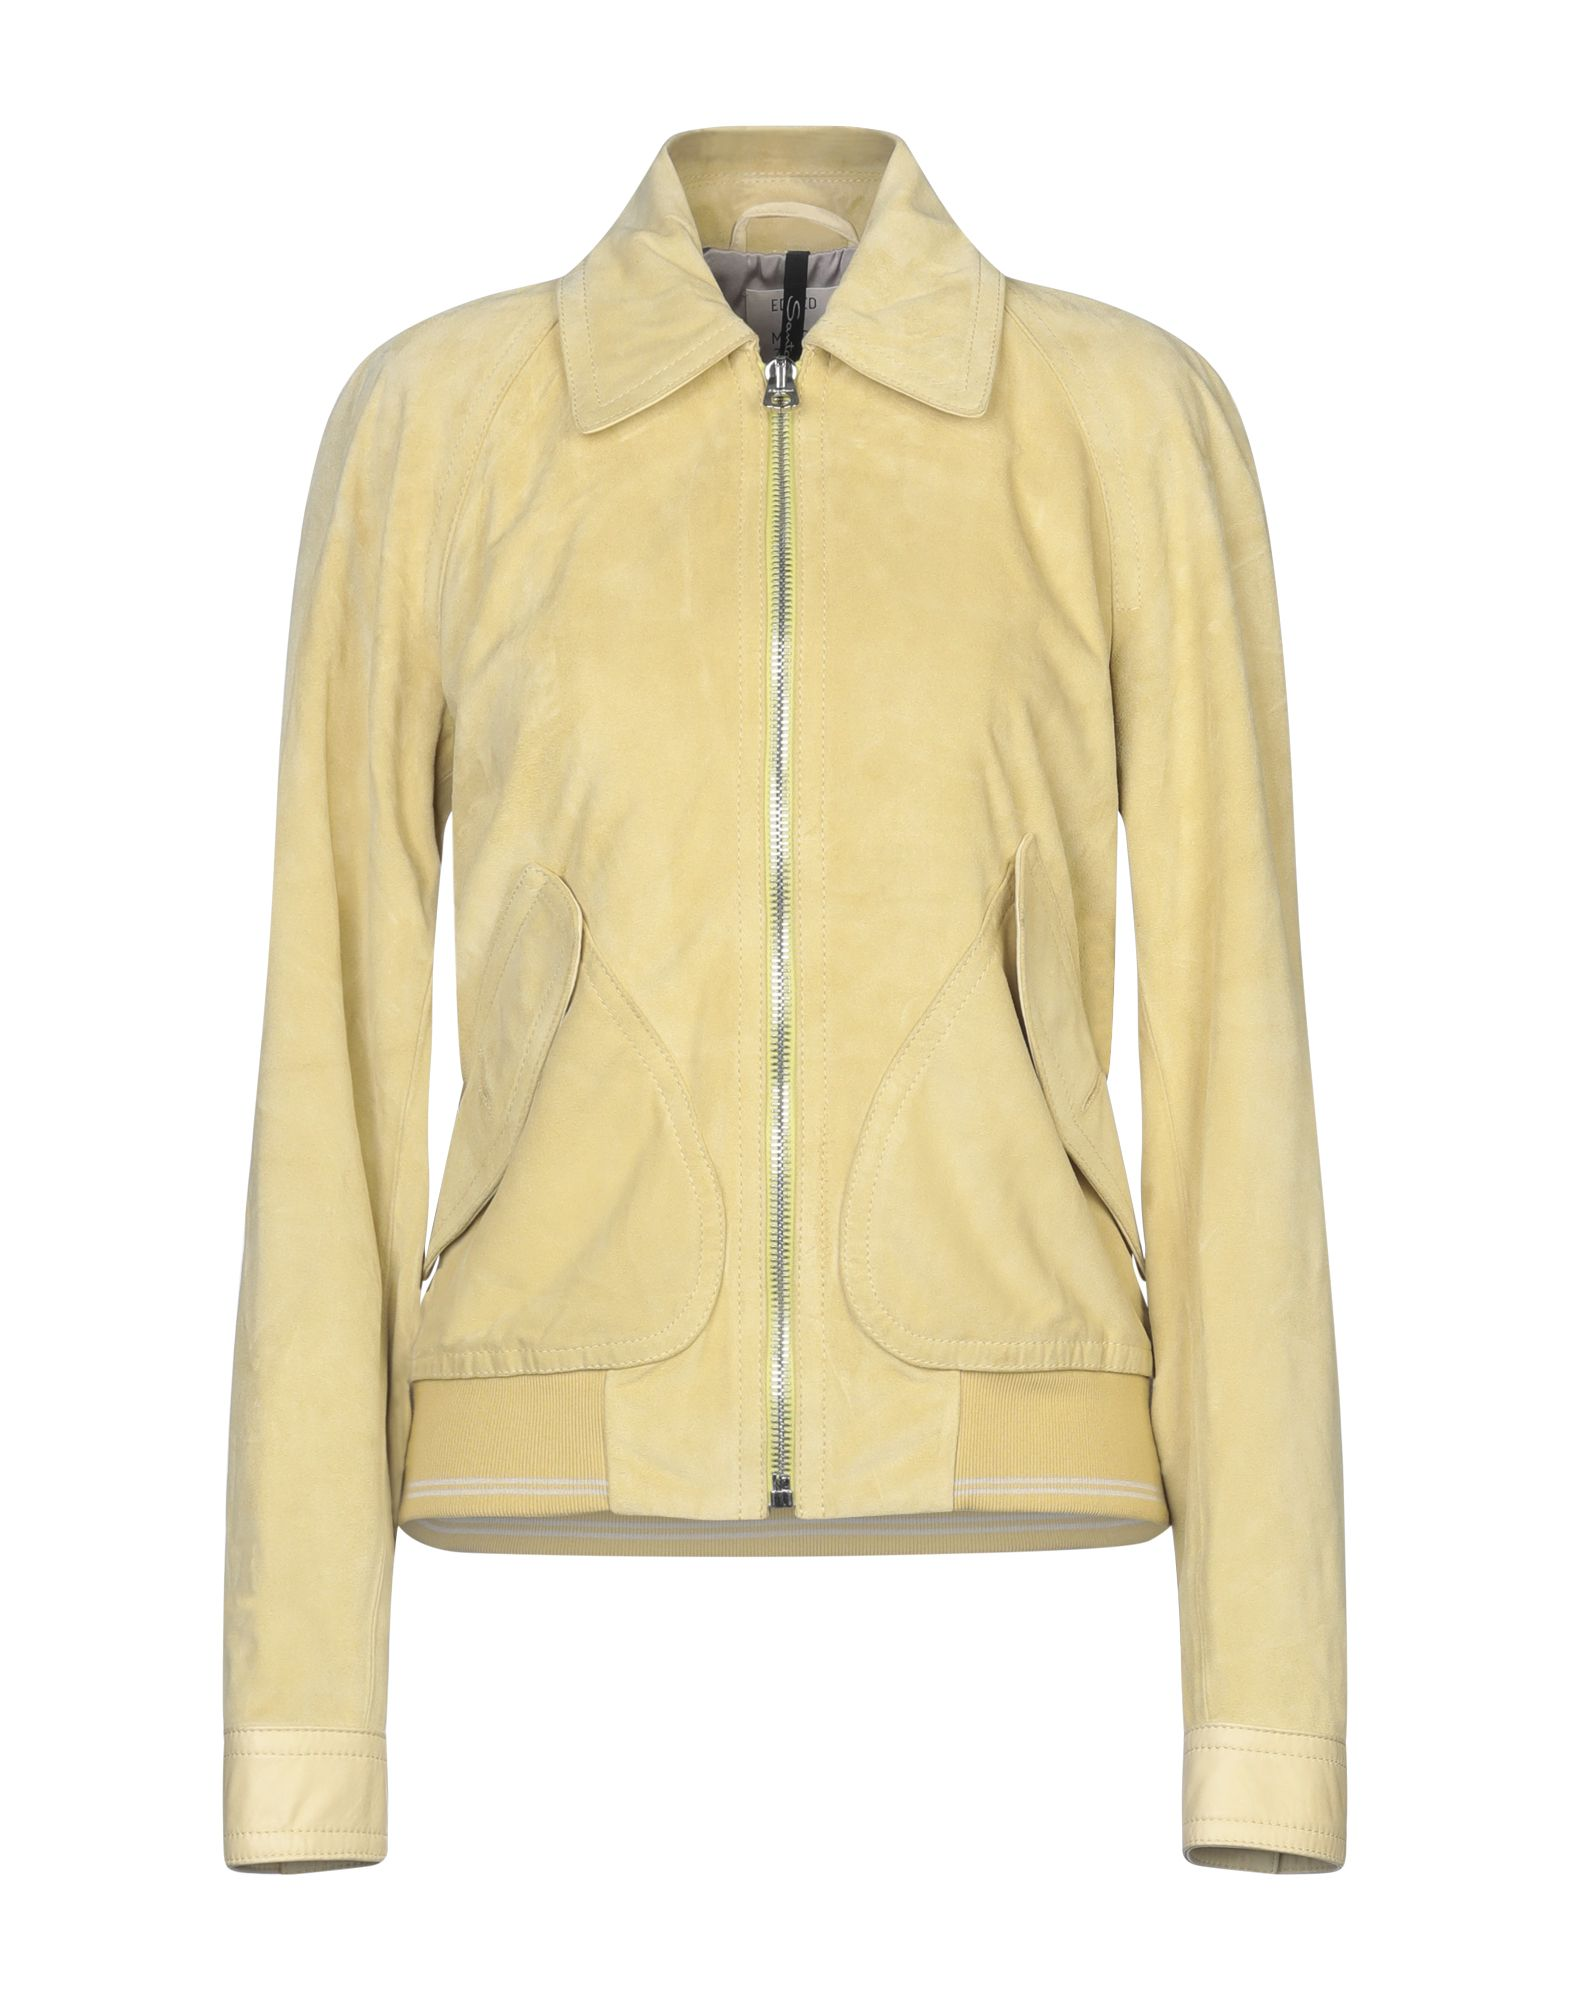 SANTONI Jackets. leather, suede effect, solid color, single-breasted, zip, logo, classic neckline, multipockets, long sleeves, dual cuffs, fully lined, contains non-textile parts of animal origin. Soft Leather